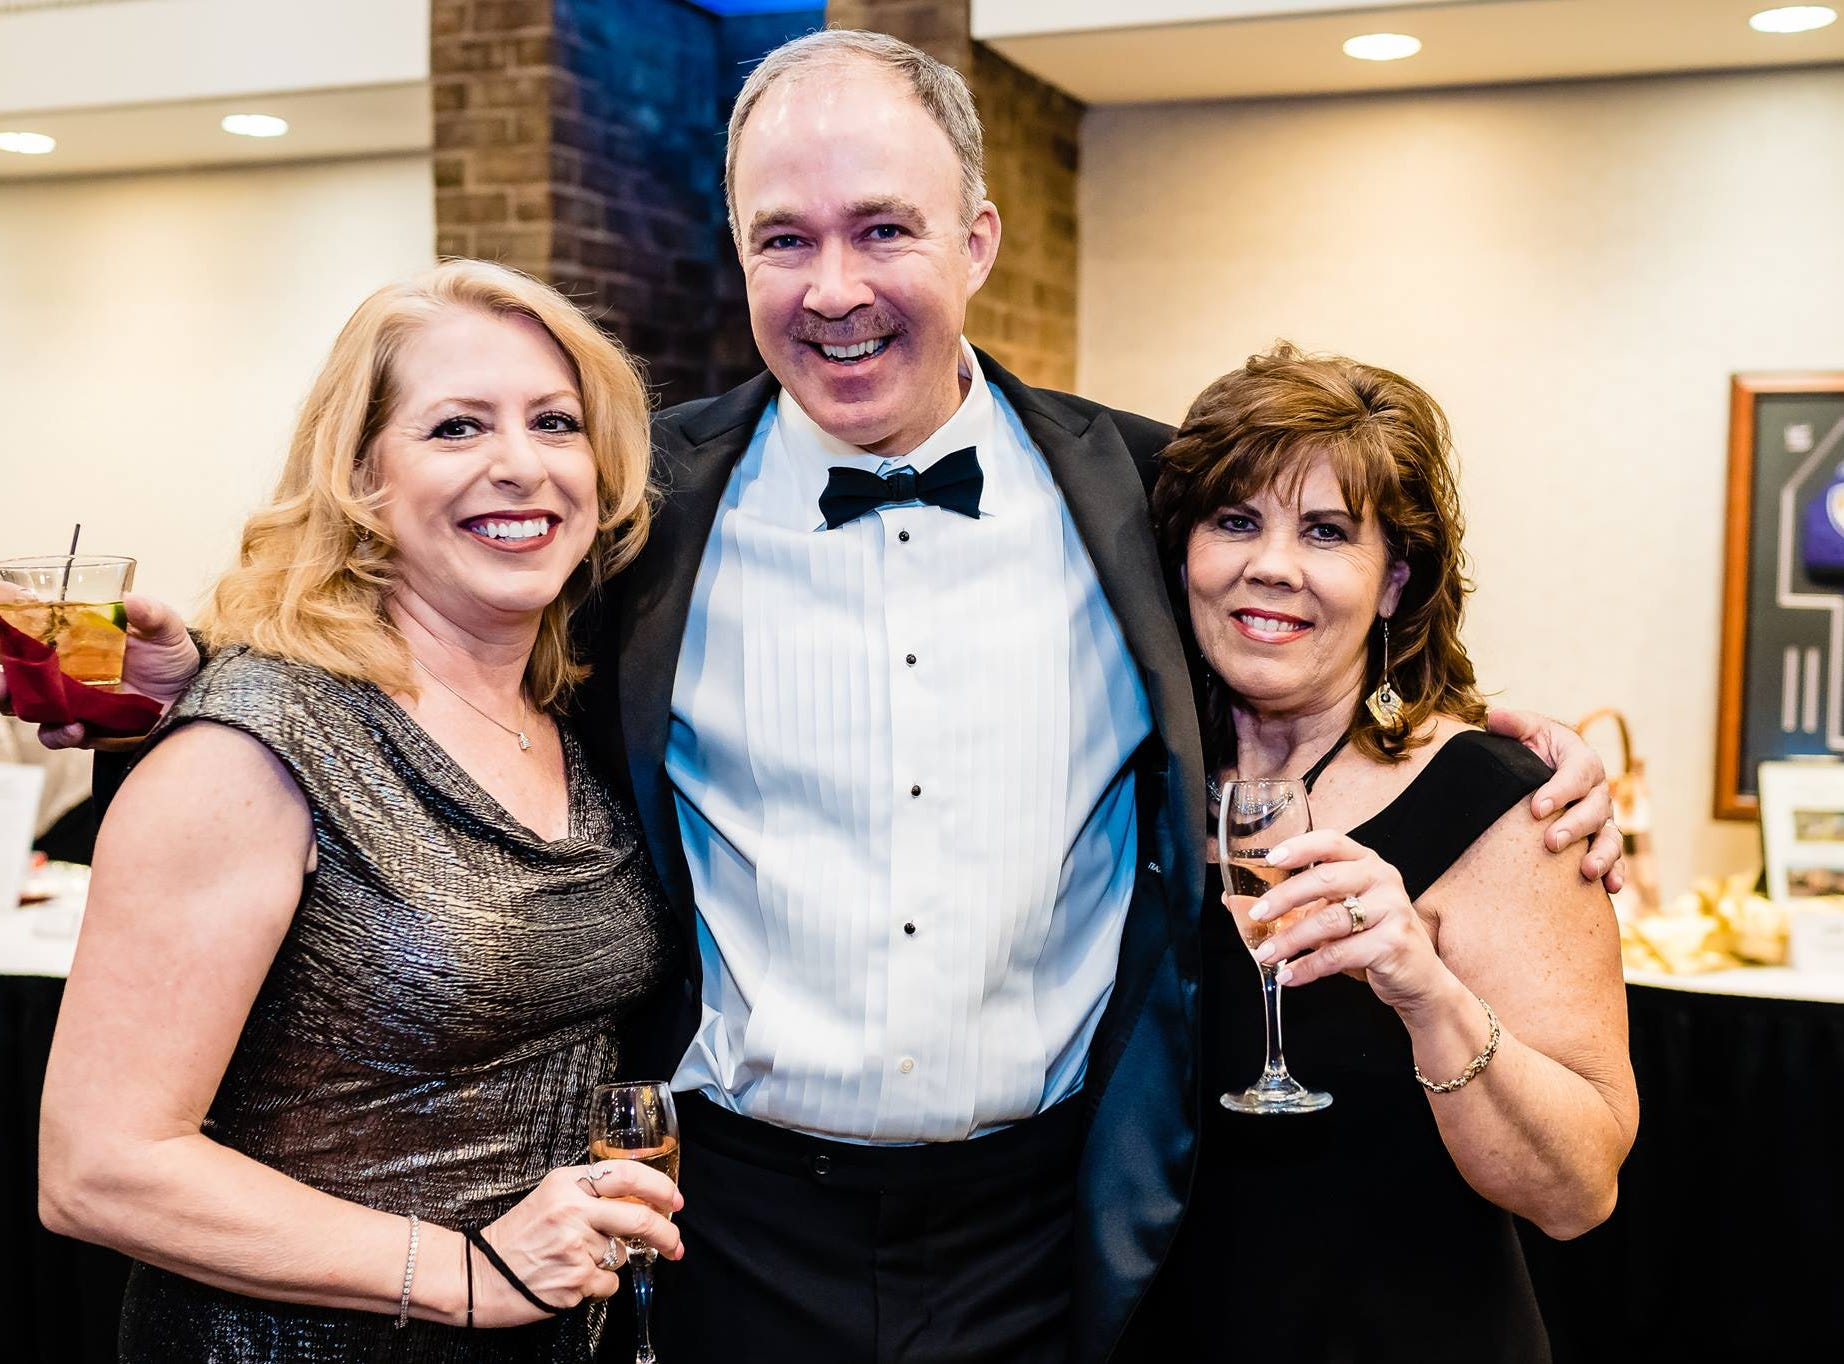 (Left to right) Pam Kinsley and John and Donna Forrey pose at Penn-Mar Human Services' annual Black Tie Gala, Saturday, March 2, 2019.